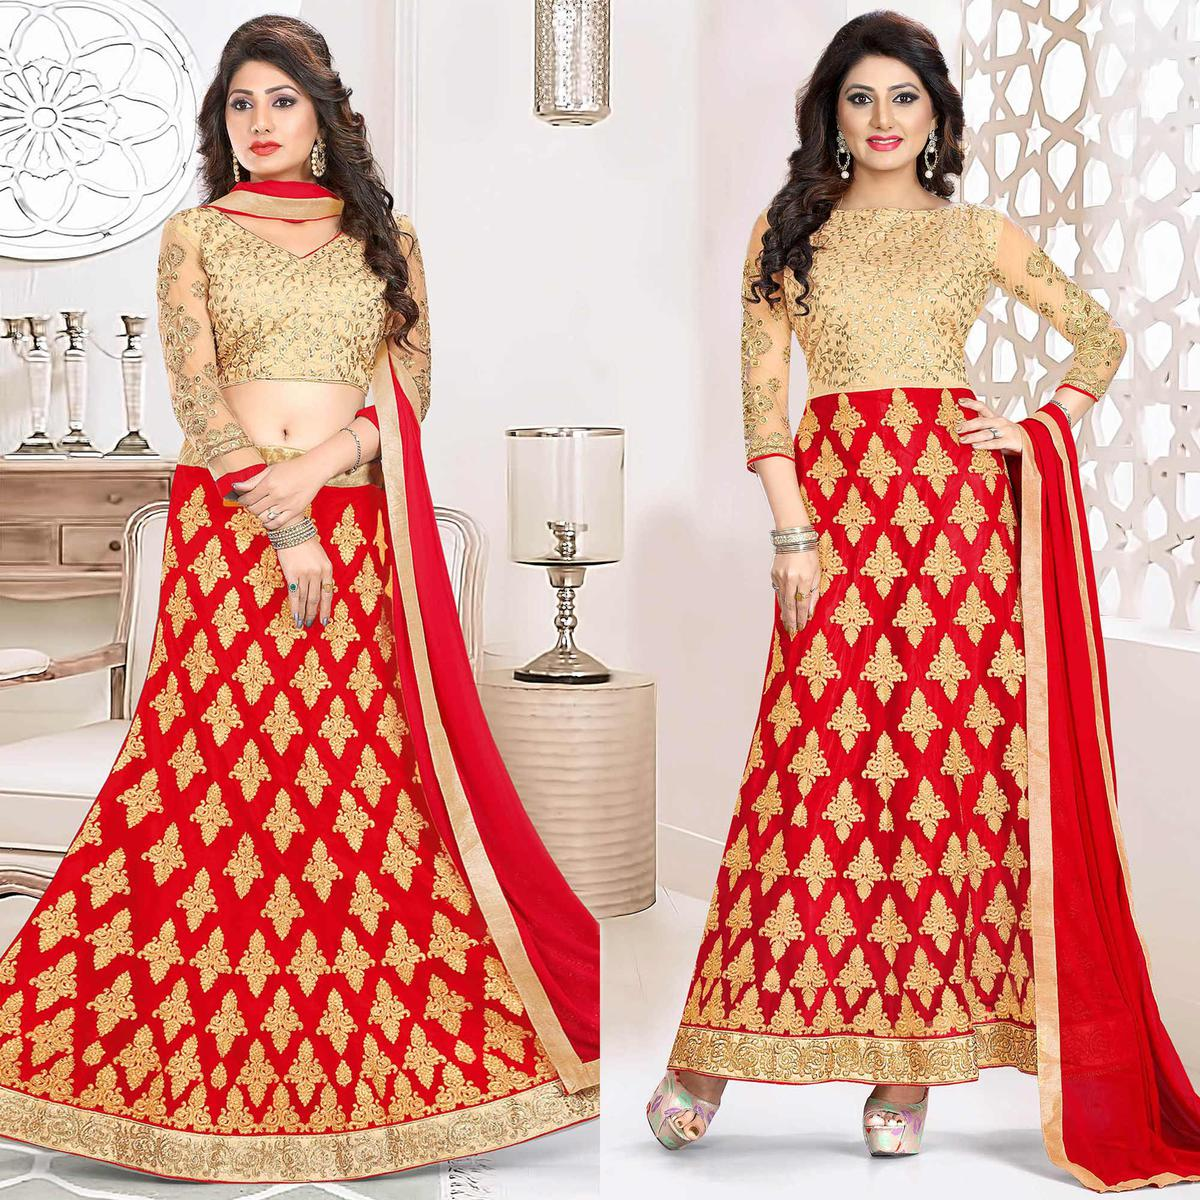 Adorable Red Colored Heavy Embroidered Art Silk-Net Lehenga / Anarkali